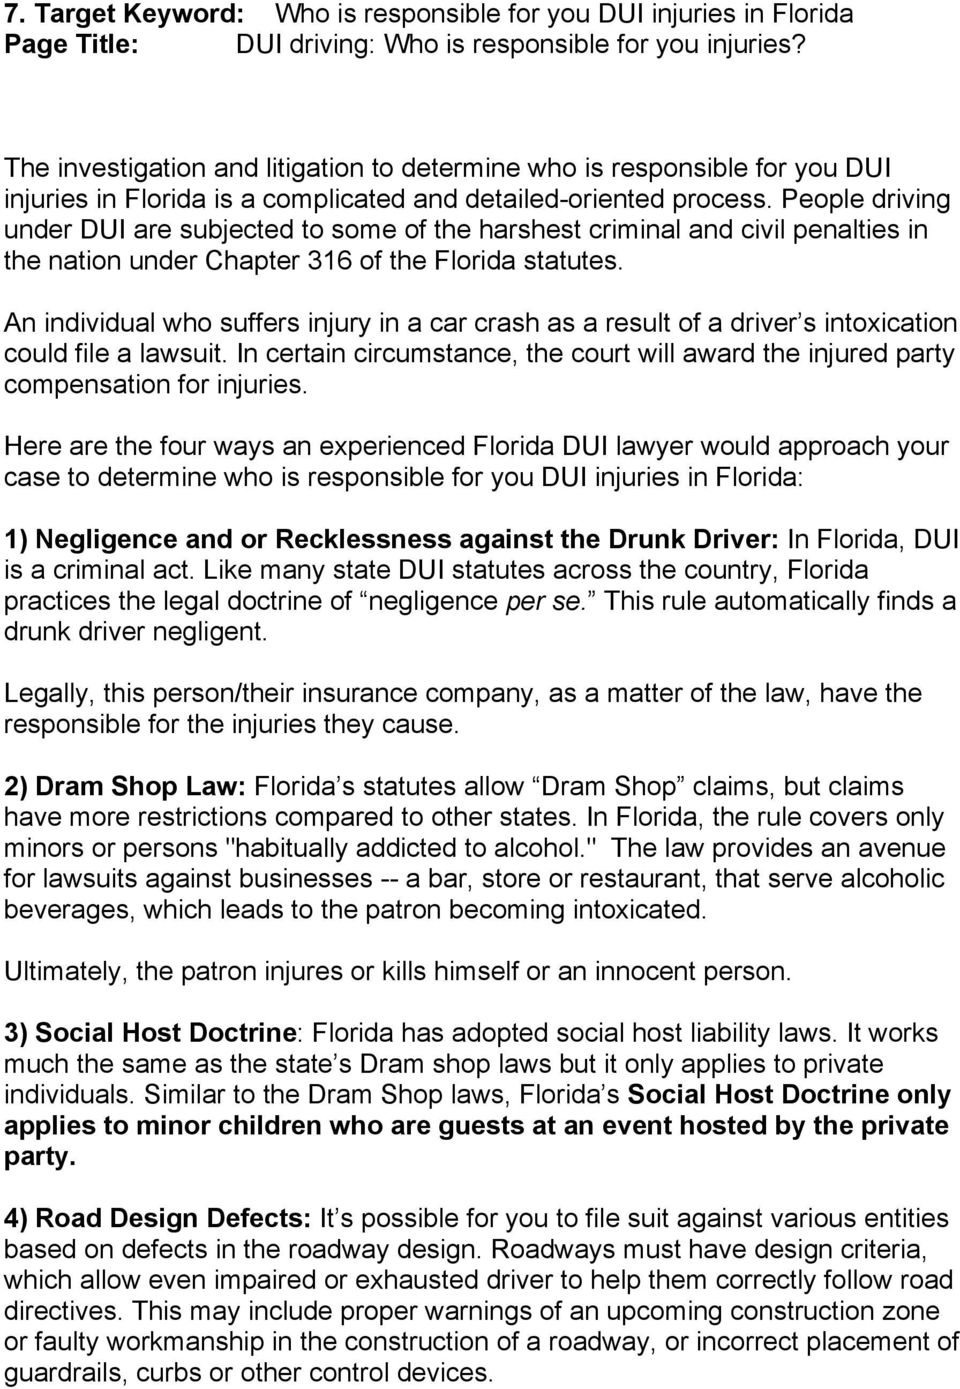 People driving under DUI are subjected to some of the harshest criminal and civil penalties in the nation under Chapter 316 of the Florida statutes.